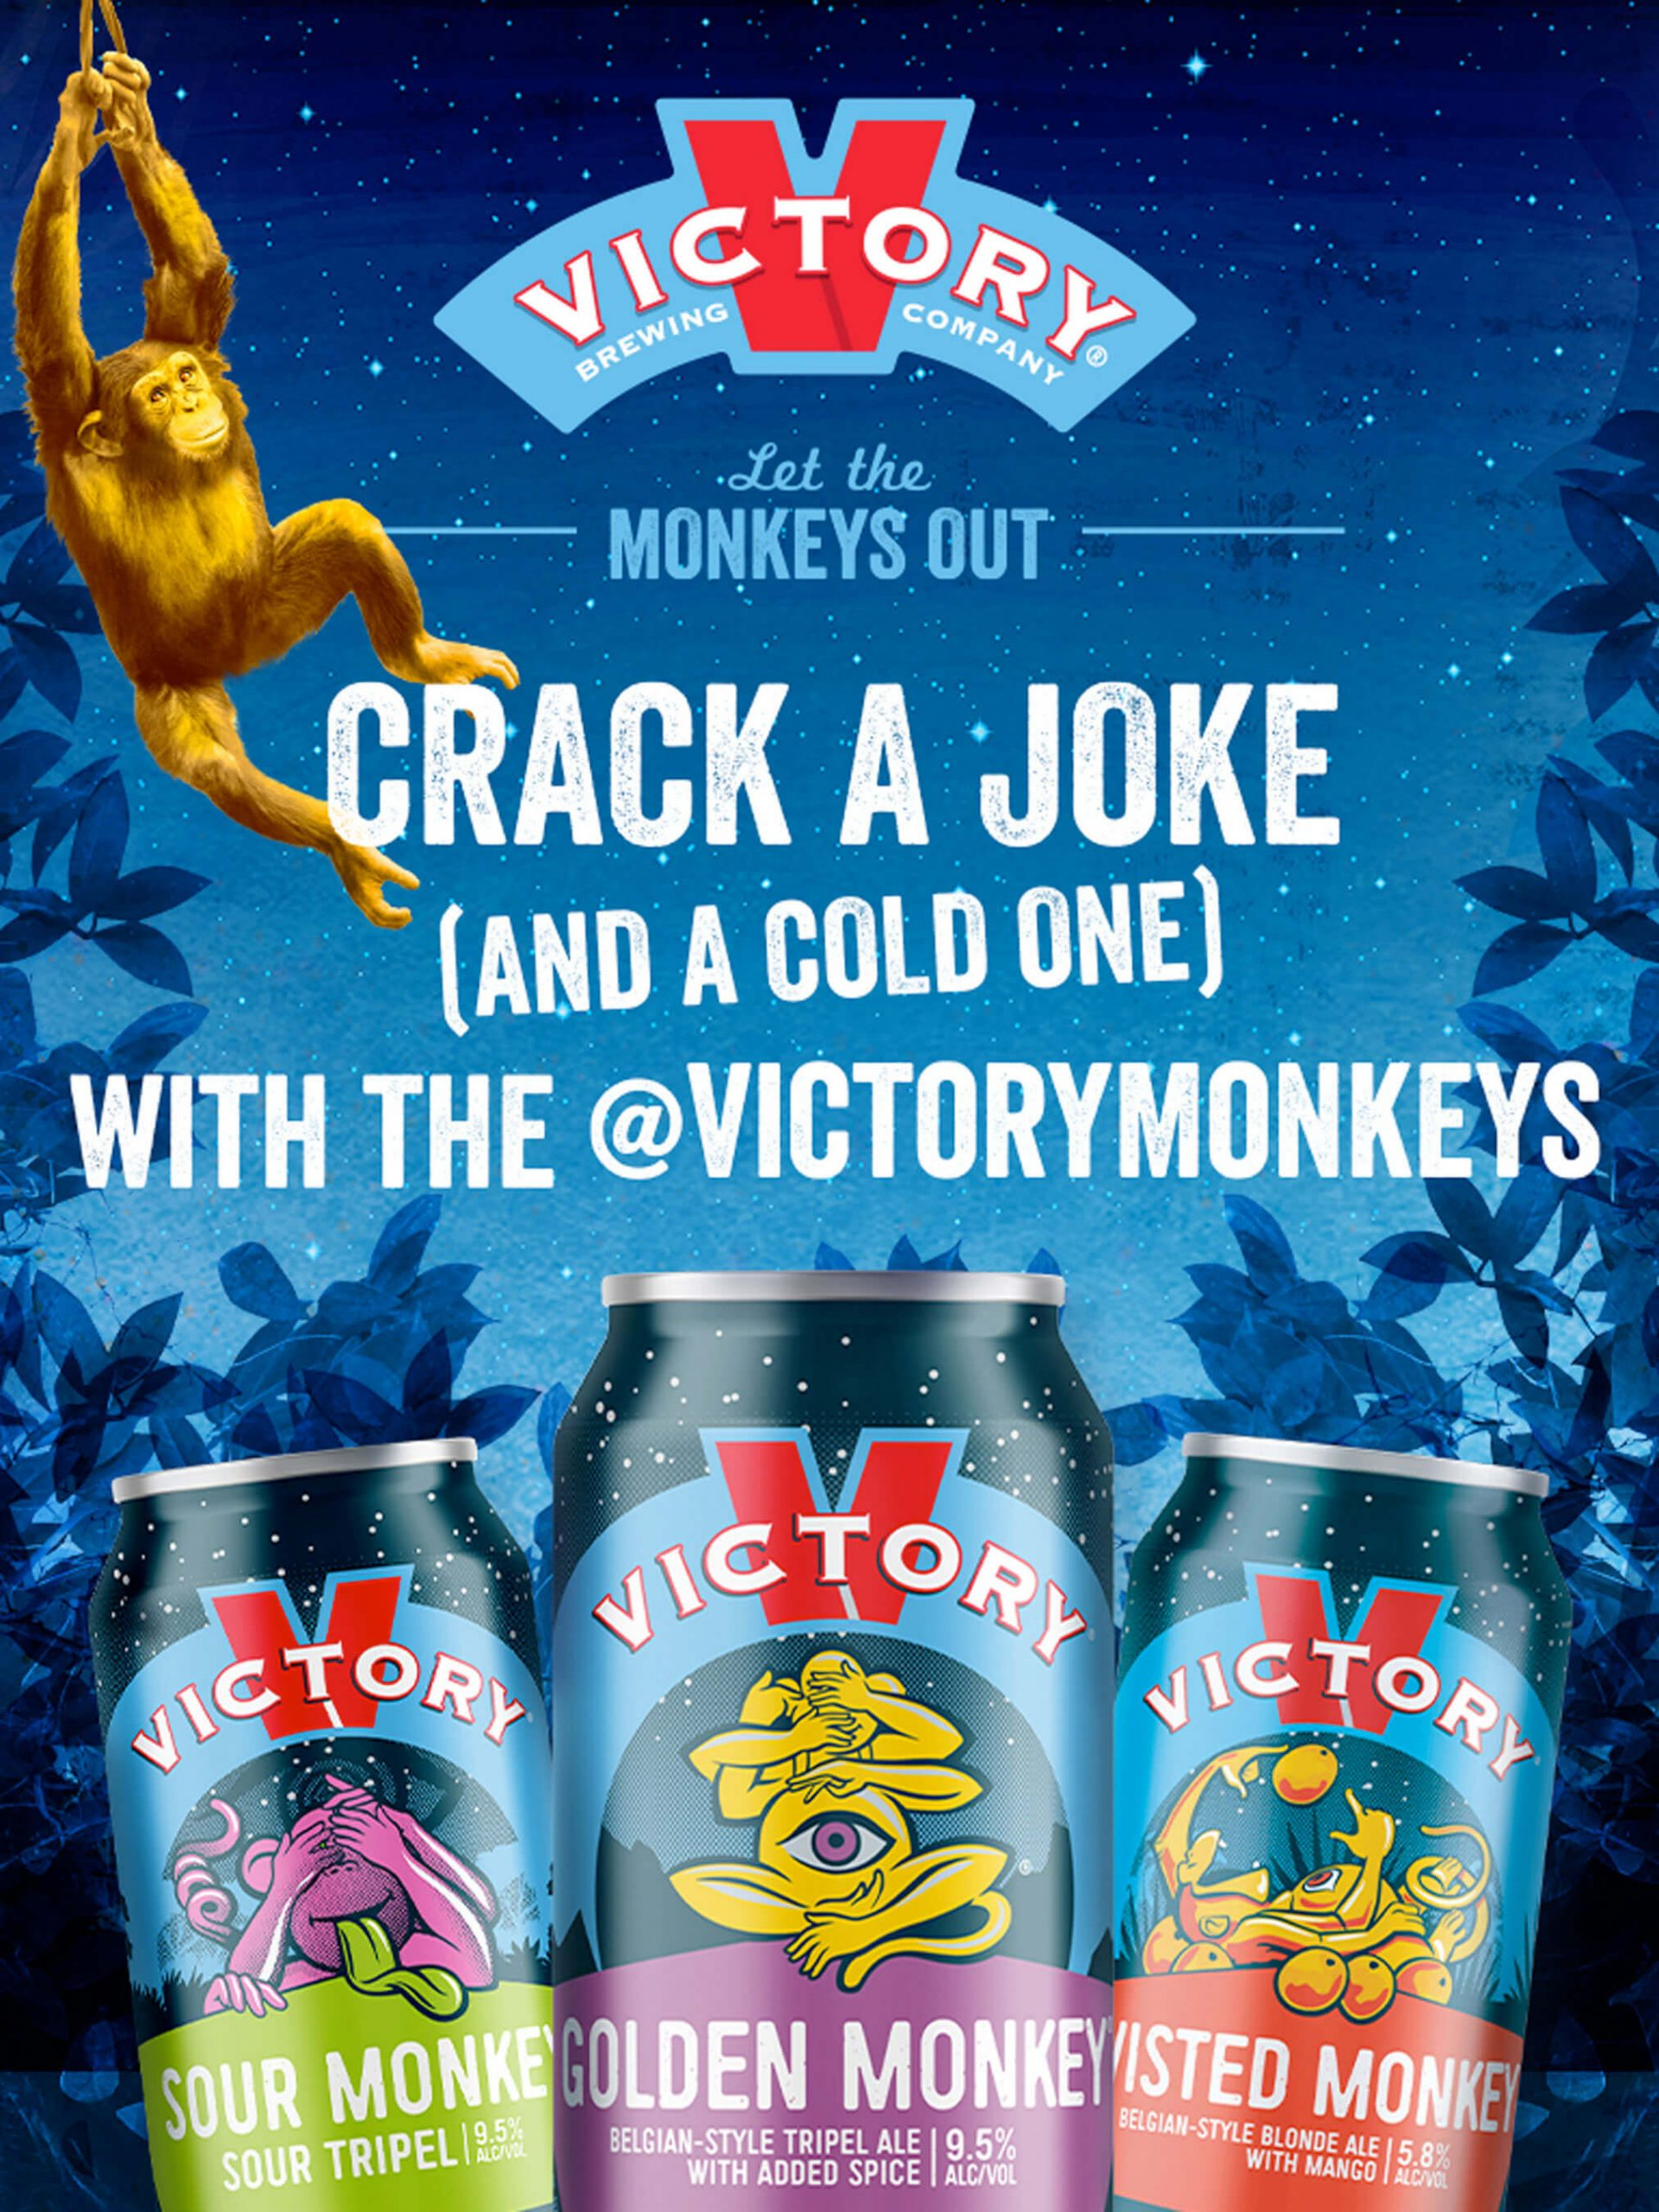 Poster promoting the Let the Monkeys Out marketing campaign by Victory Brewing Company